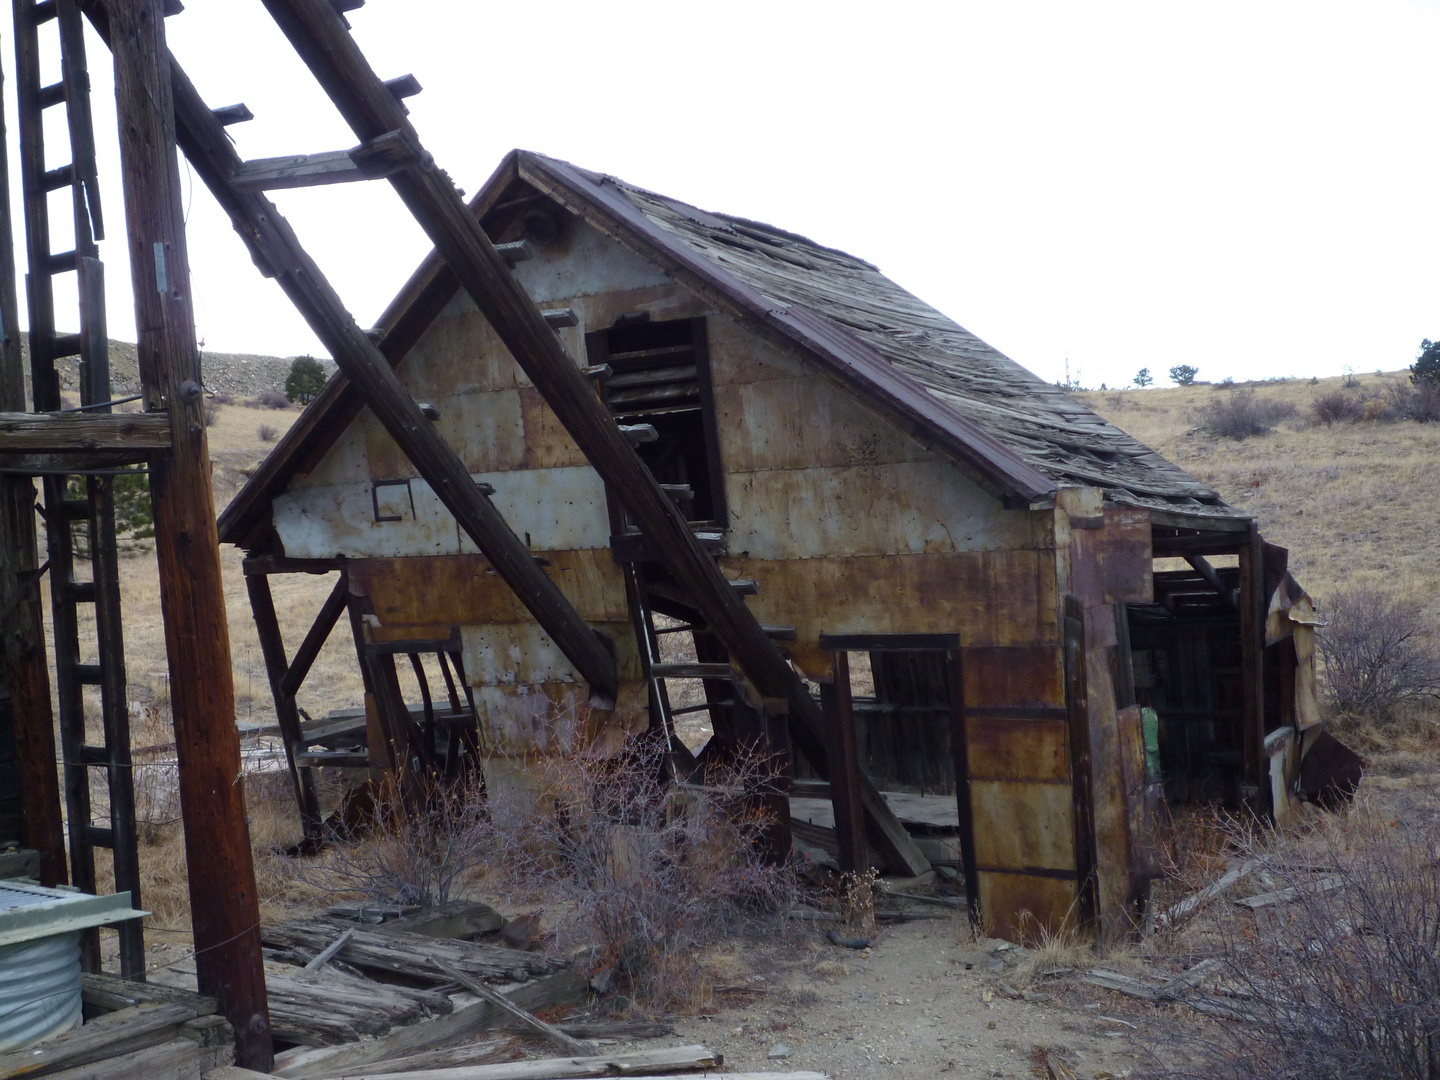 Wild West 1880 - Abandoned Gold mine near Central City